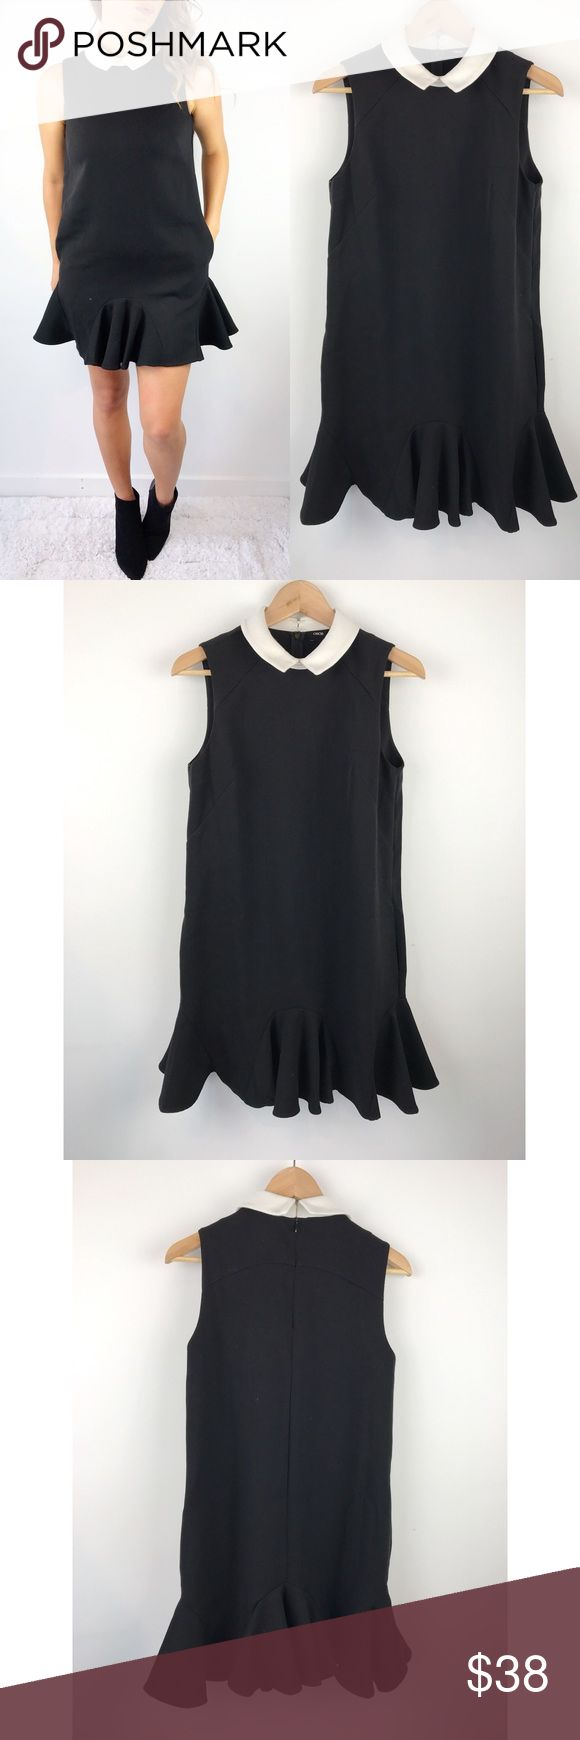 "Asos Black Dress with Contrast Collar Asos Black Dress with Contrast Collar. Excellent condition. Super comfortable. Relaxed fit to flare hem. Polyester, viscose, and elastane blend. Back zipper. size 6. Can fit 4-6. Chest-34"" waist-37"" hips-38"" length-34"" ASOS Dresses Mini"